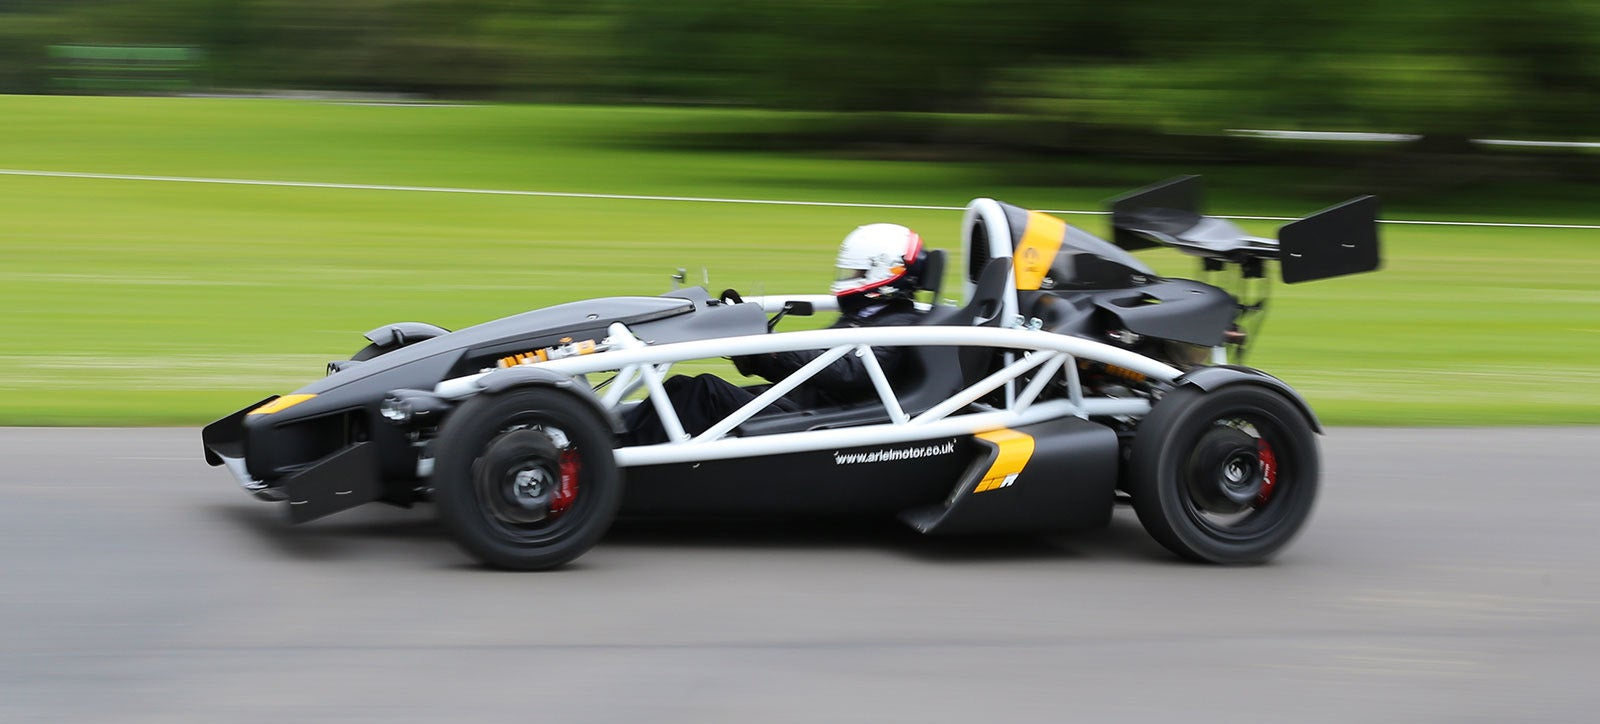 Watch The Ariel Atom 3.5R Tear Up The Tarmac In Supercharged Madness